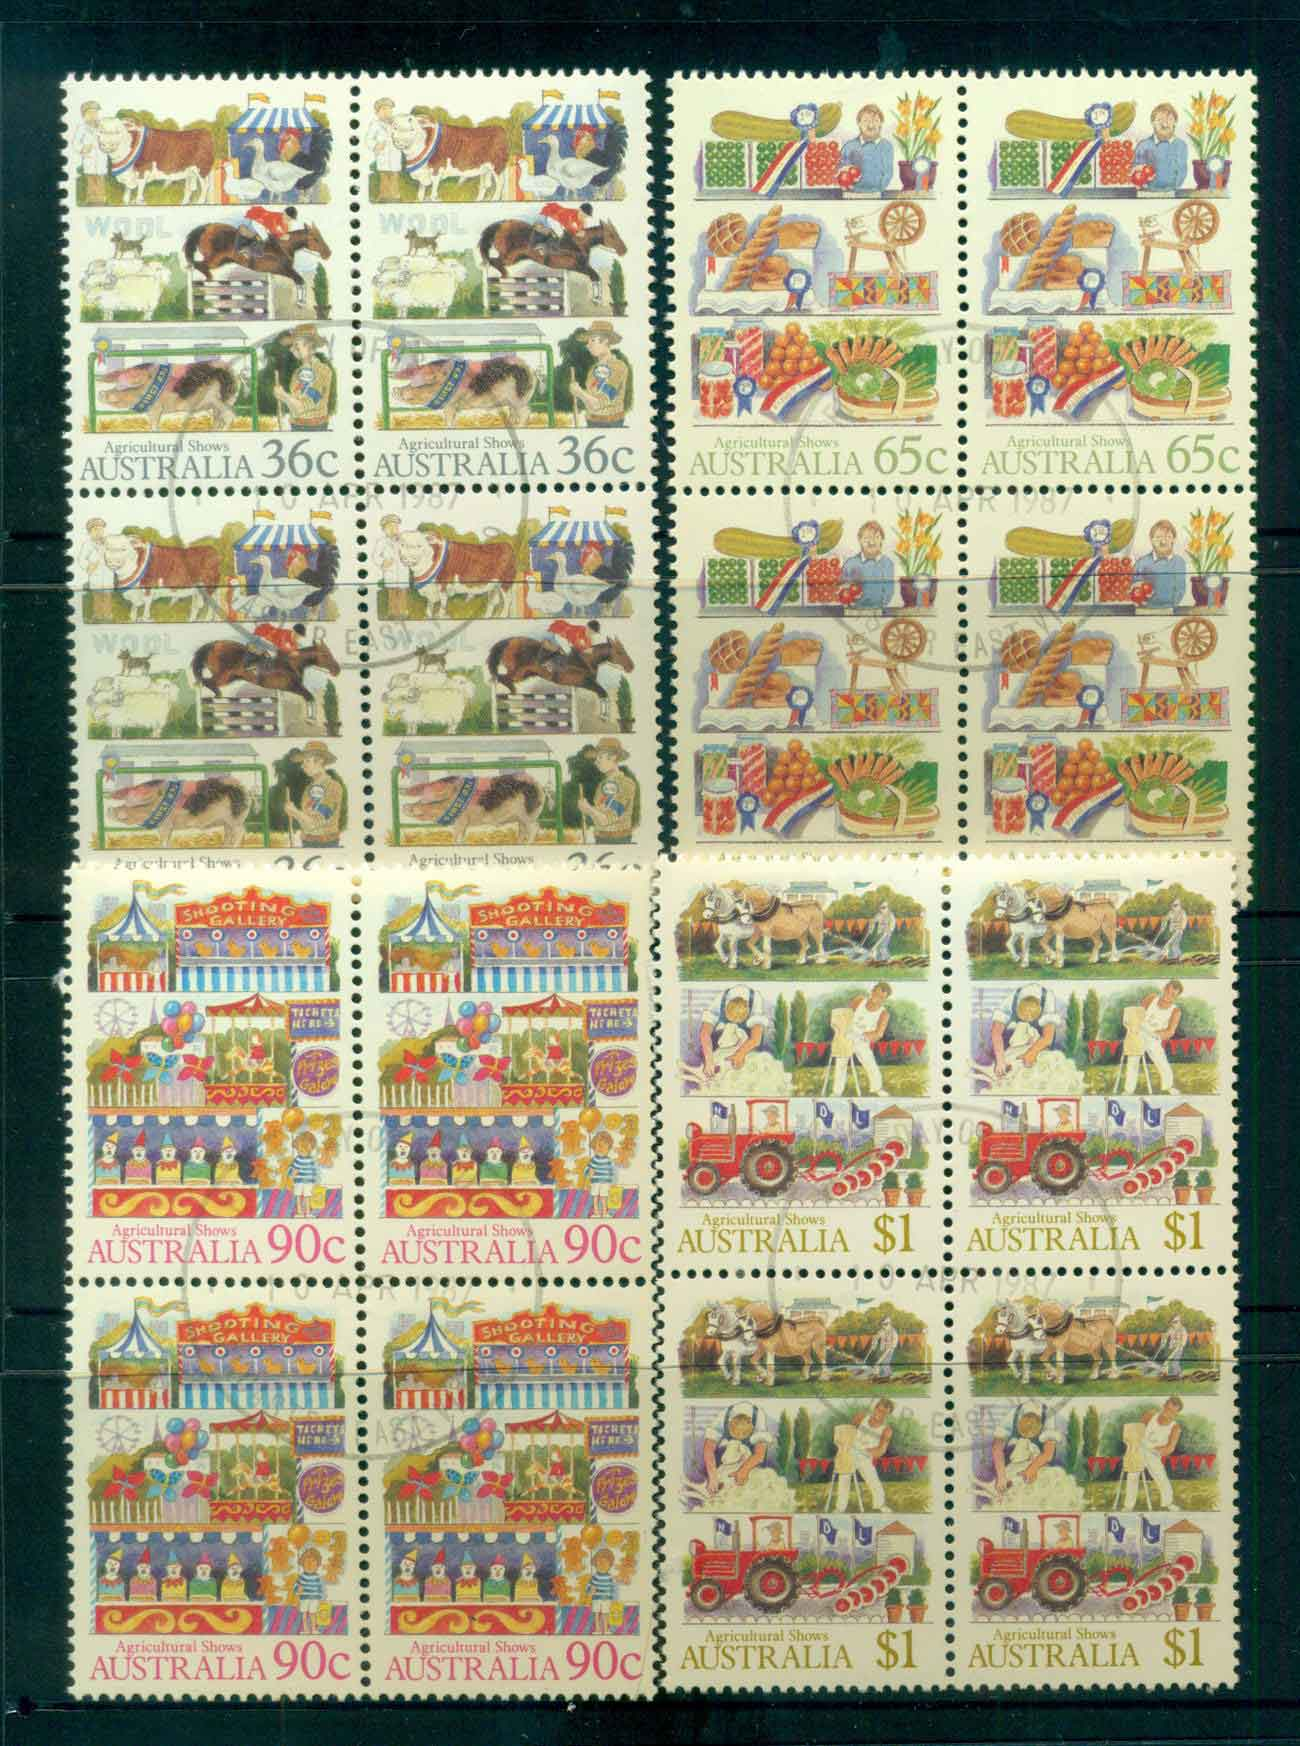 Australia 1987 Agricultural Shows Blks 4 CTO lot52185